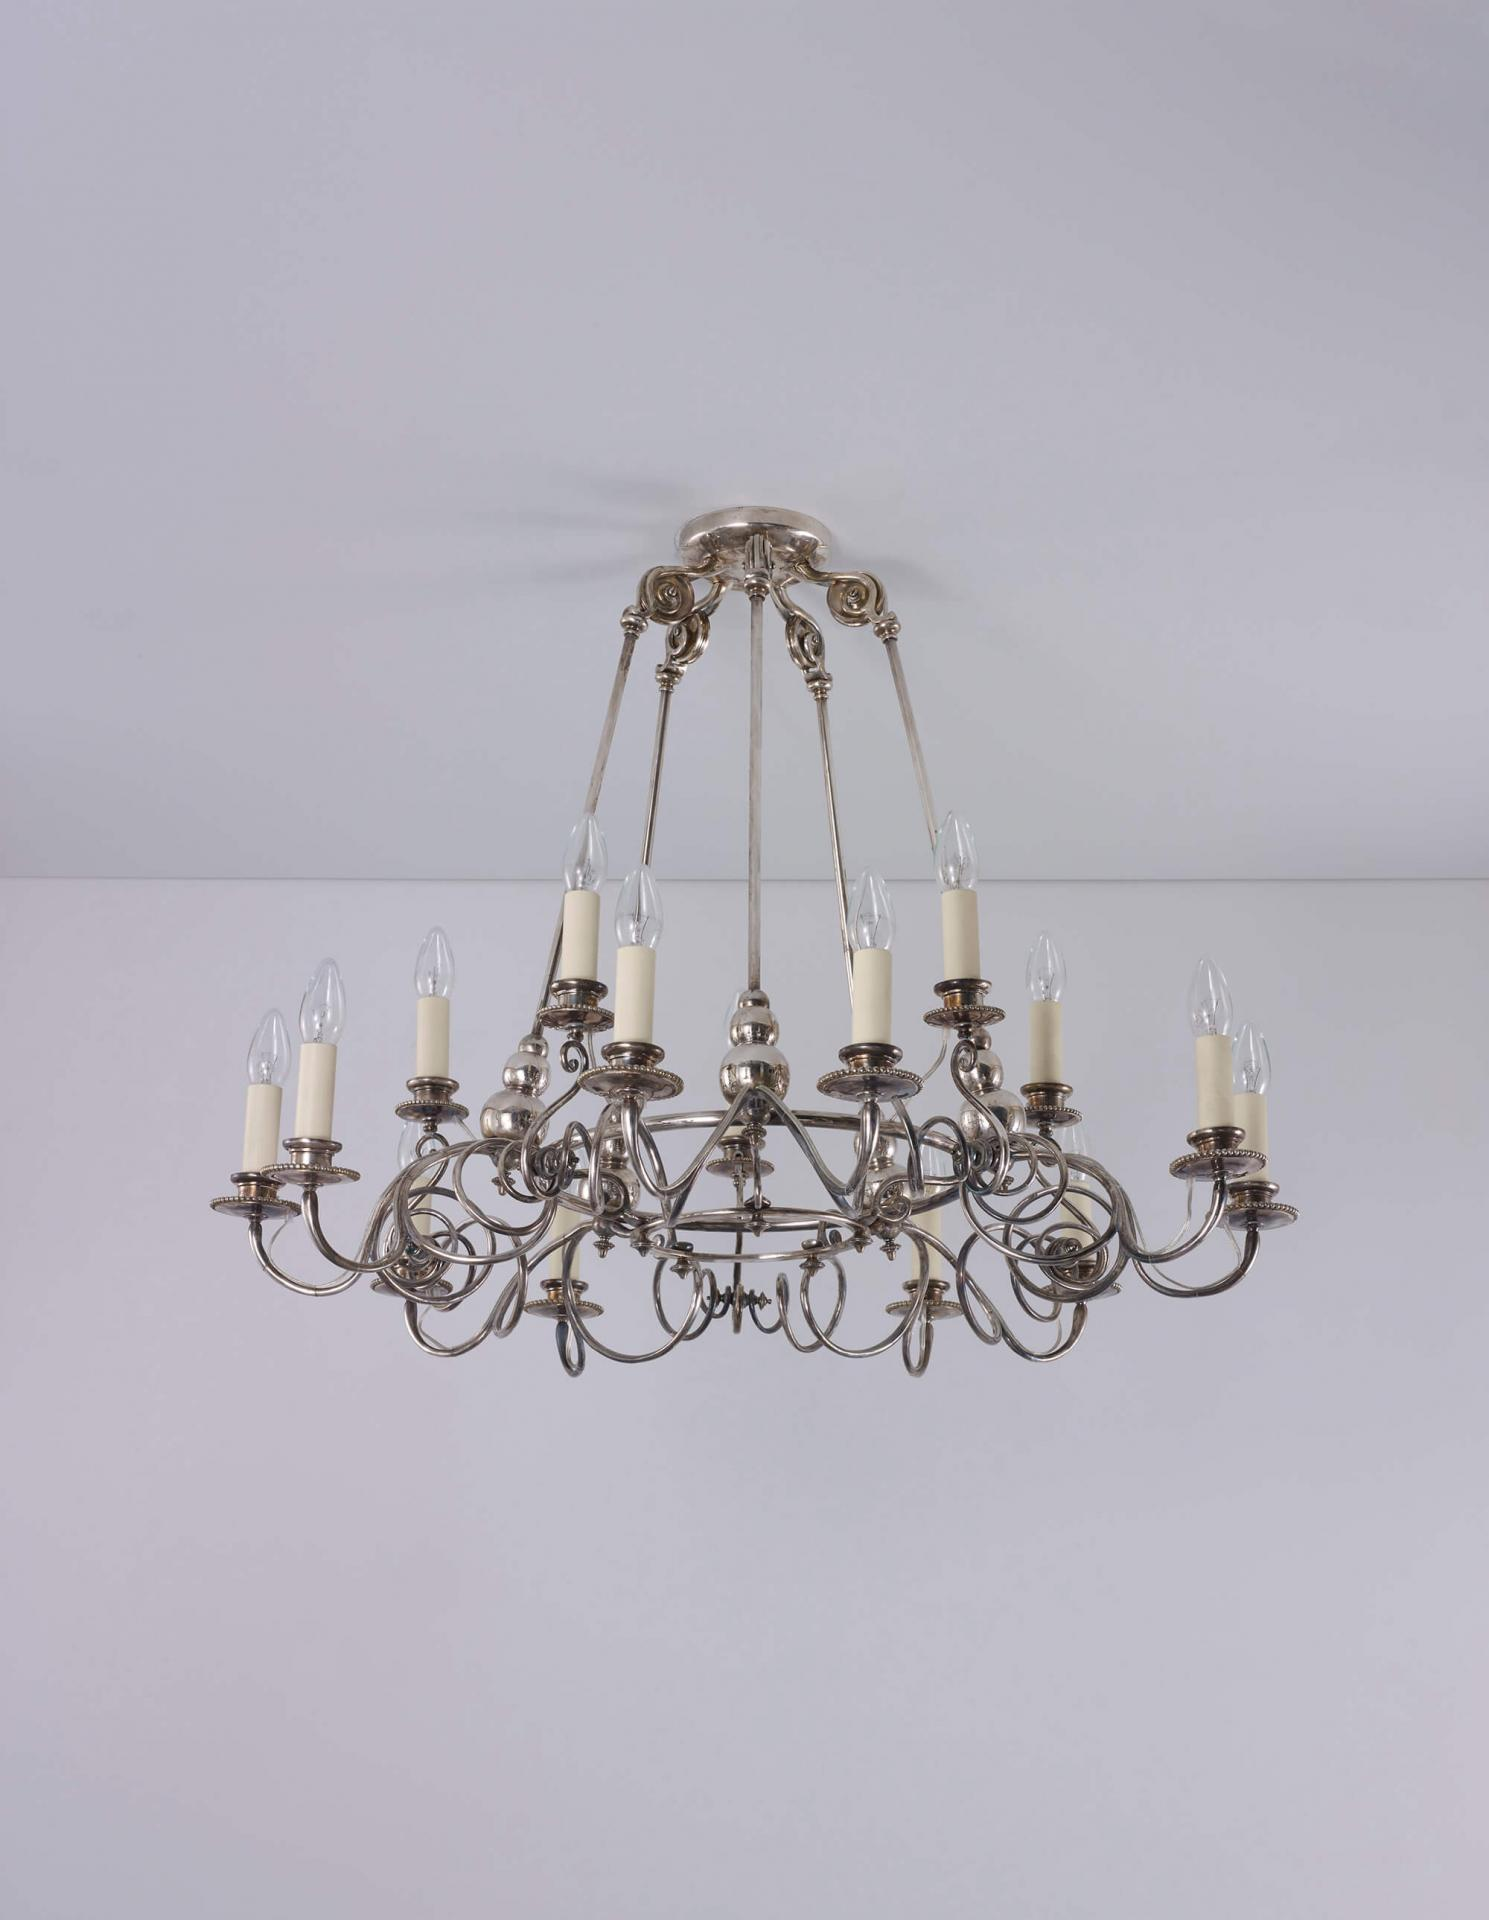 Coco Chandelier - inspired by an early 19th Century chandelier